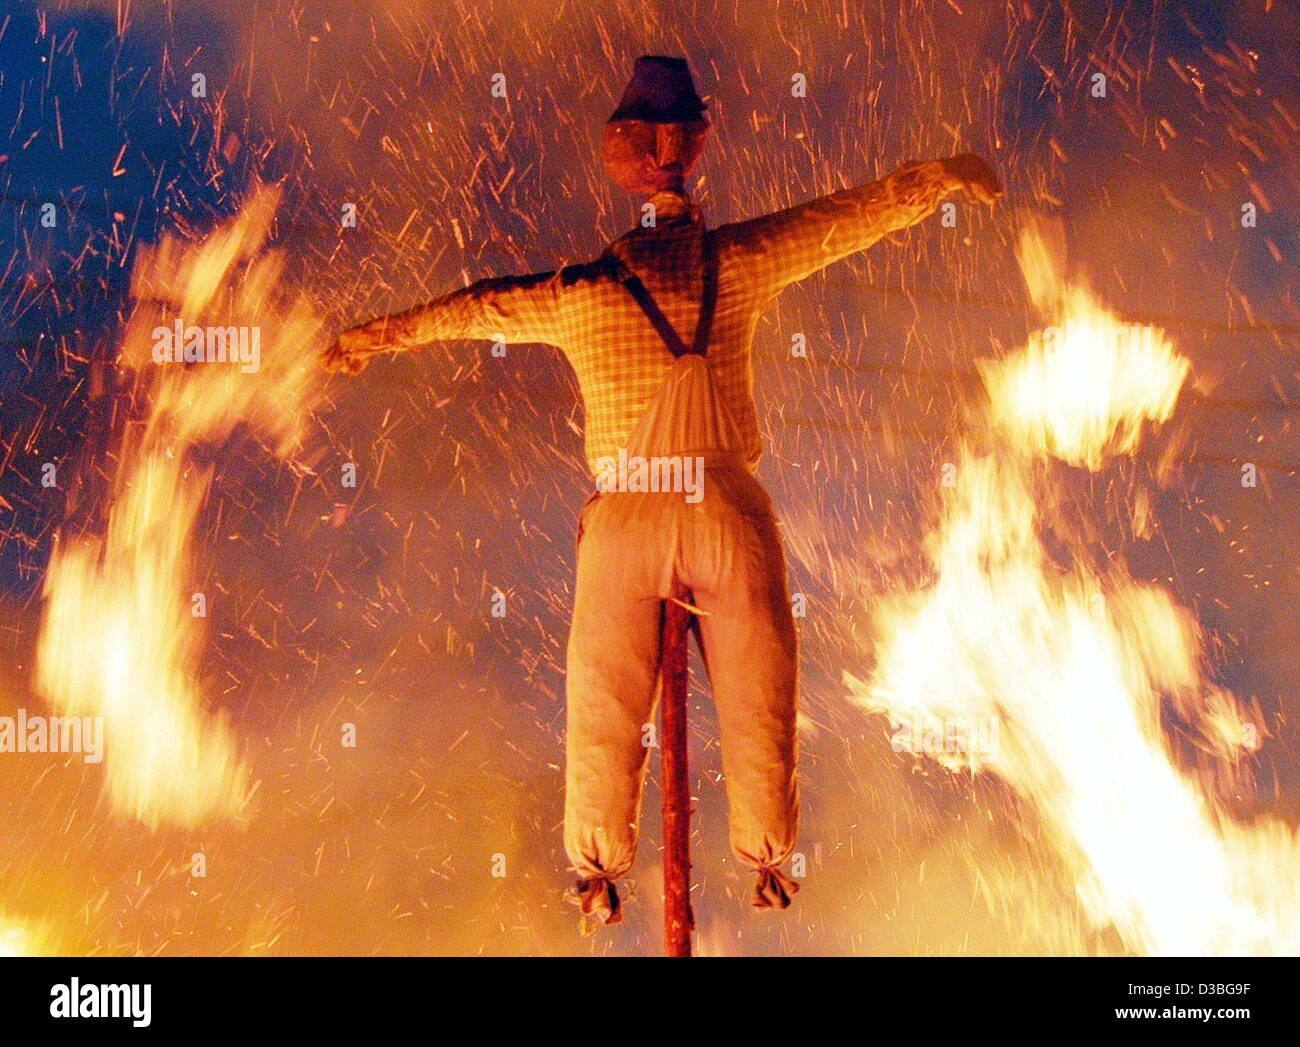 (dpa) - Sparks and flames encircle a doll made from straw during the Midsommer Night celebrations in Leiblfing, - Stock Image